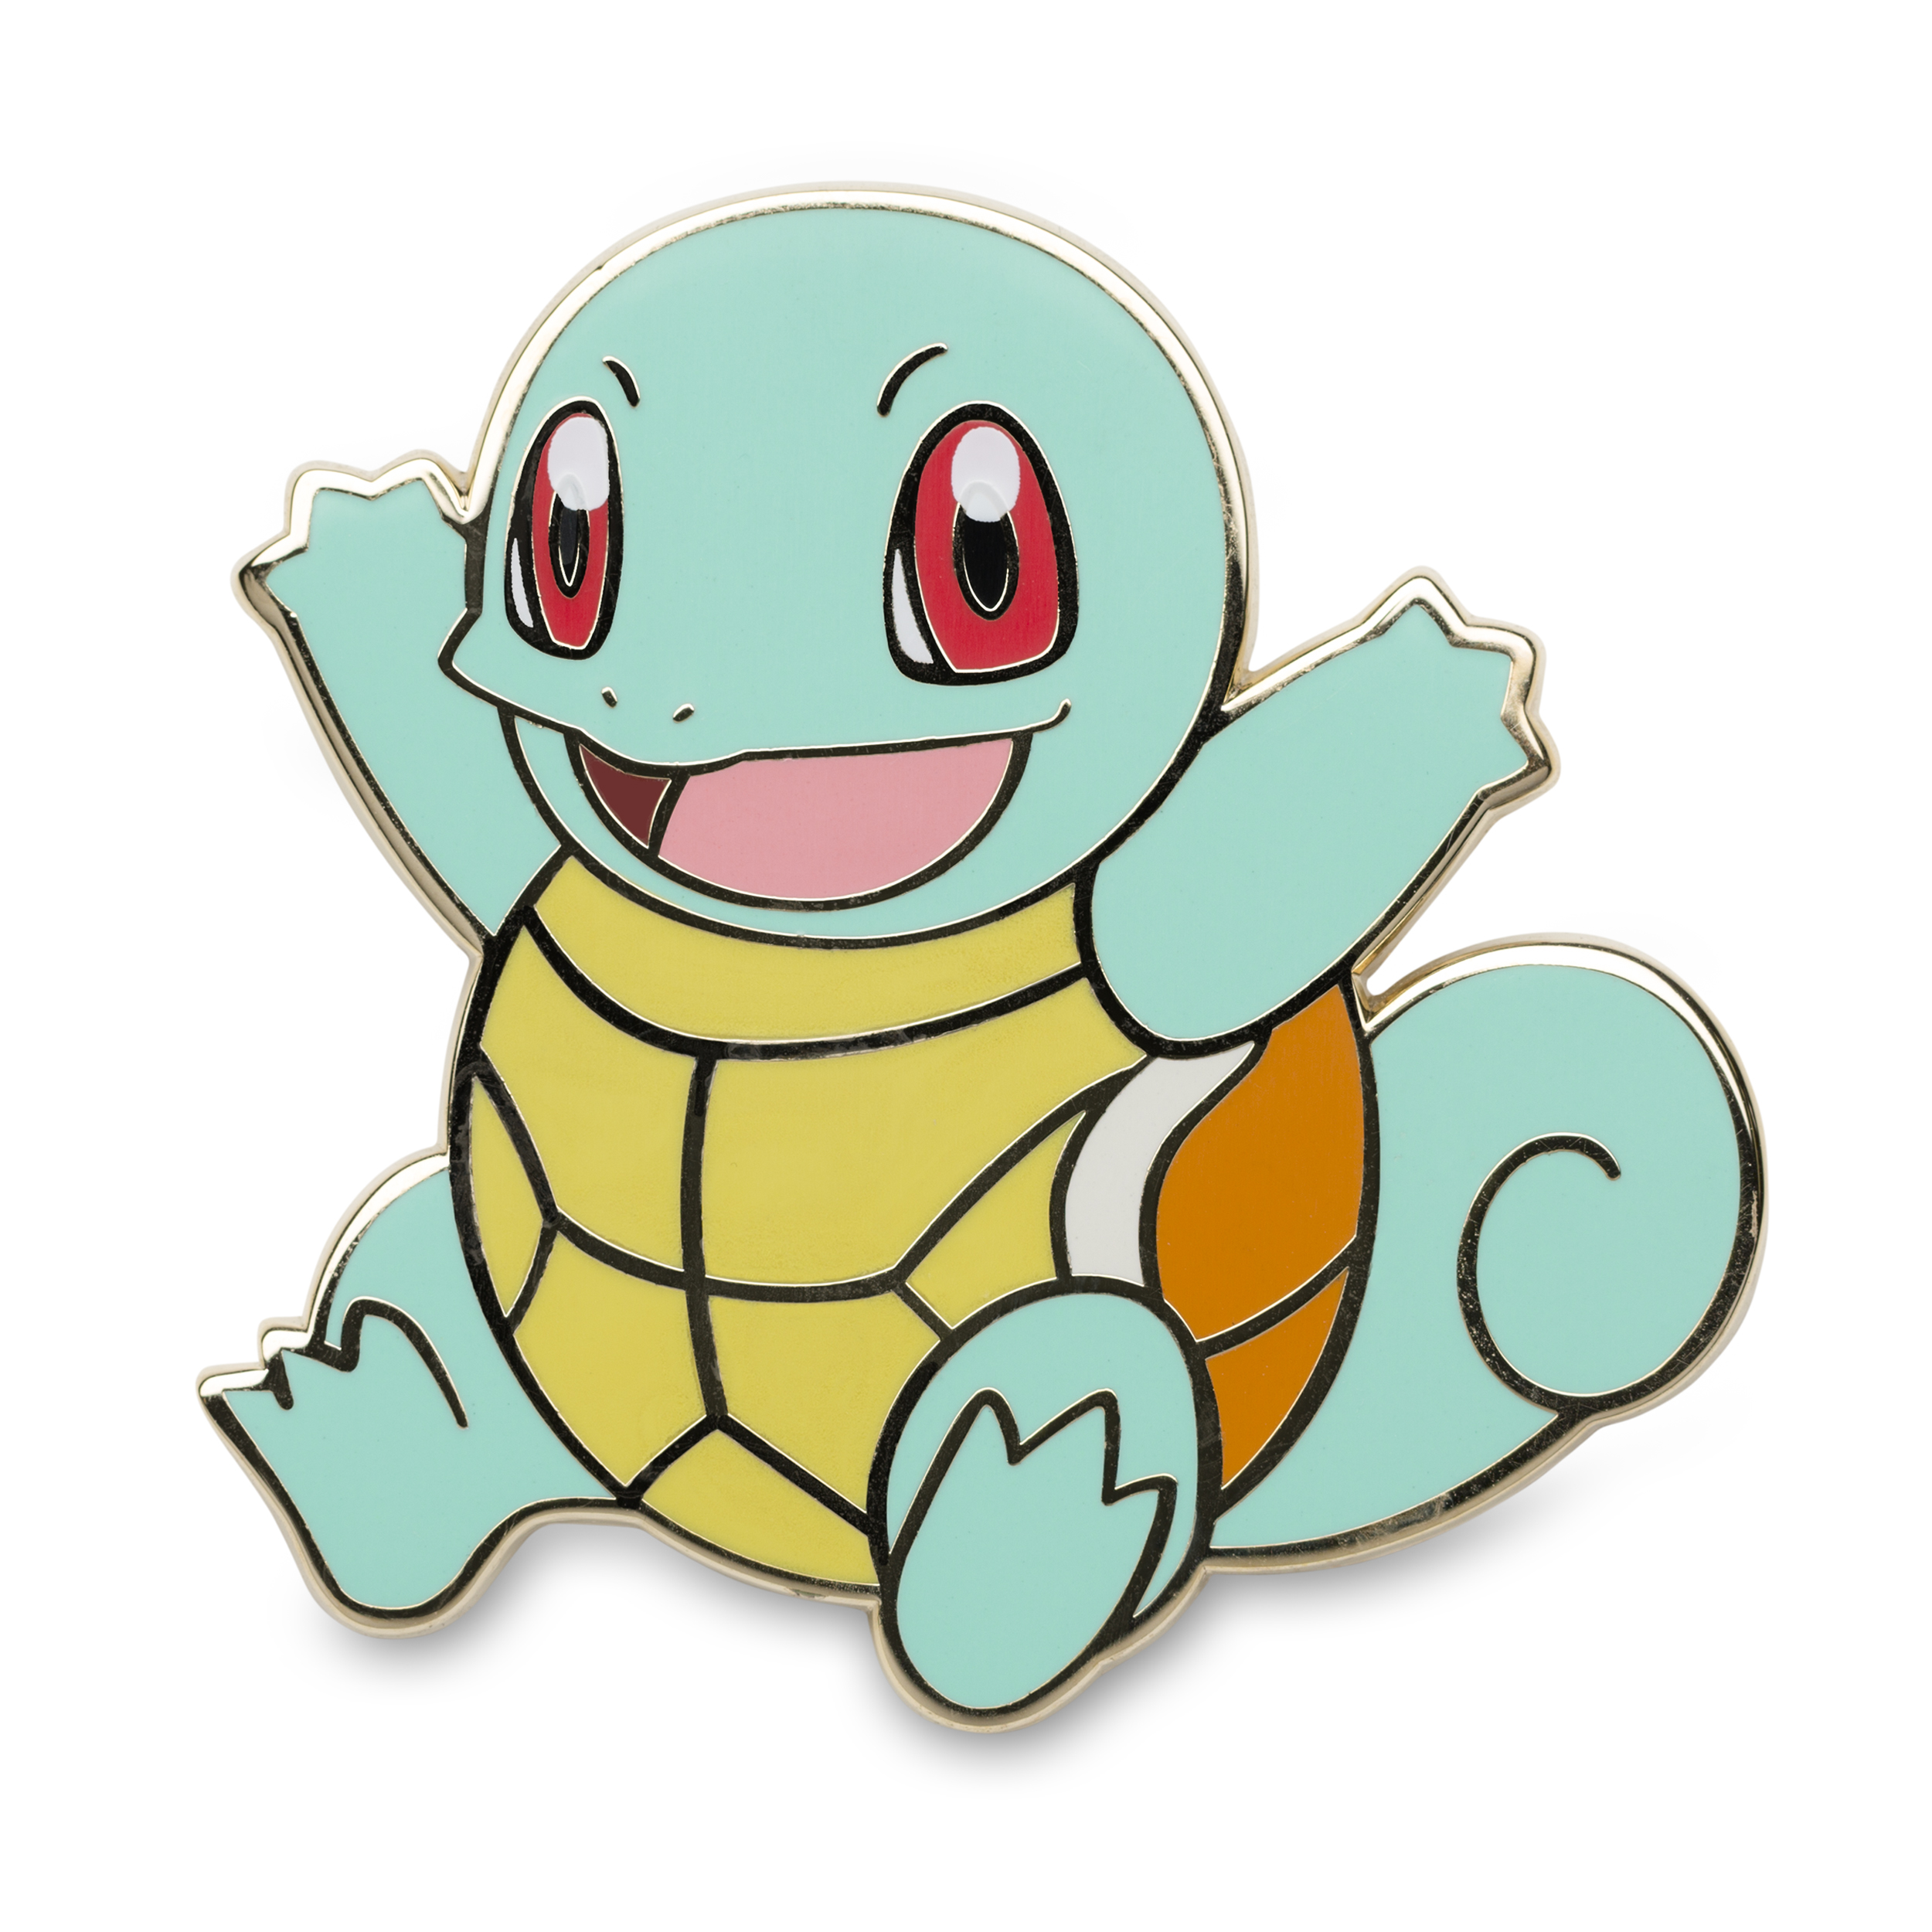 Pokemon Pikachu Bulbasaur Charmander Squirtle Images ...